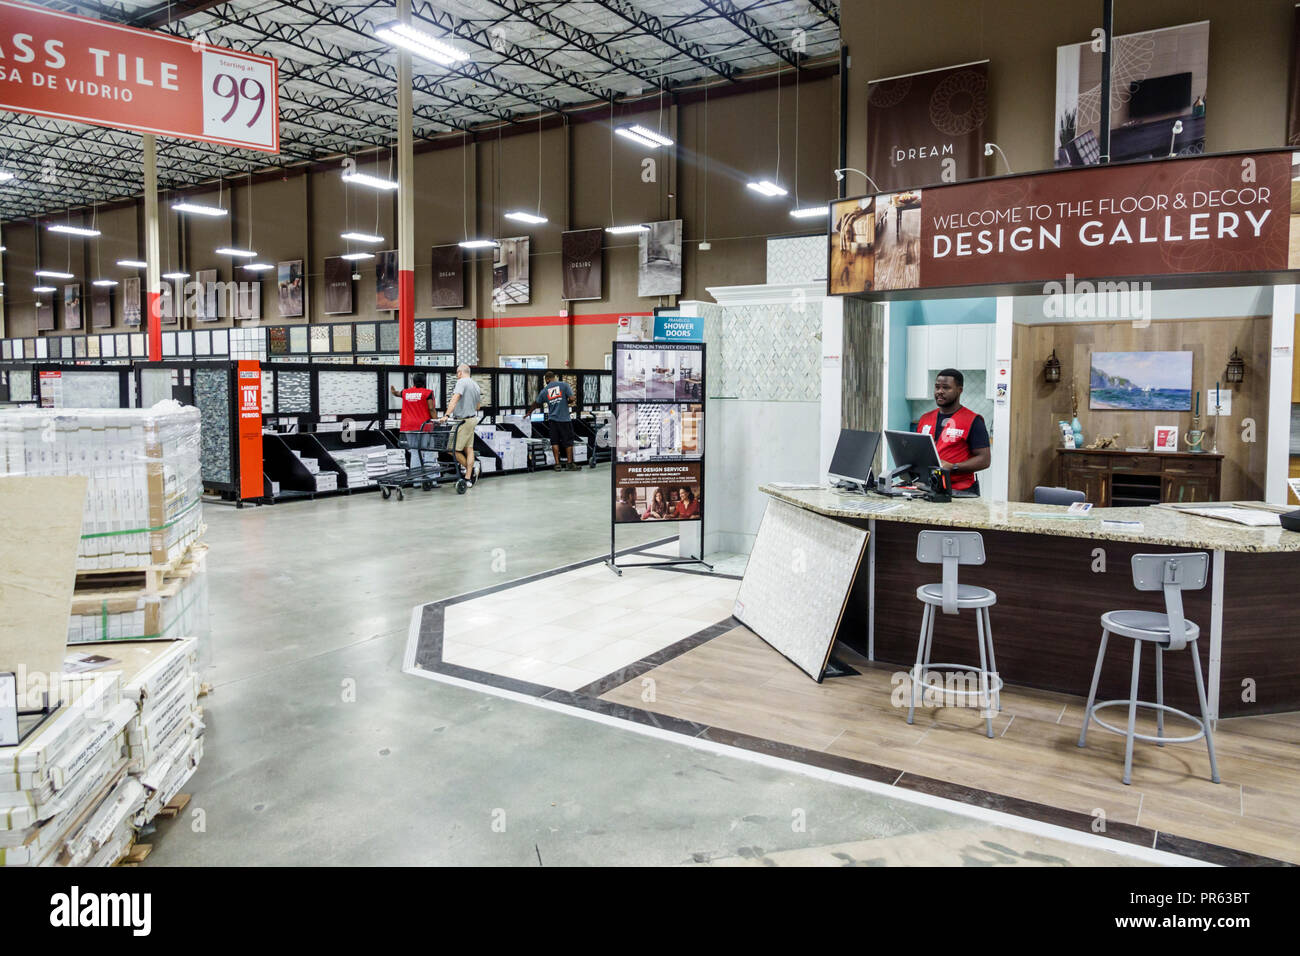 Page 4 - Floor And Decor Store High Resolution Stock Photography